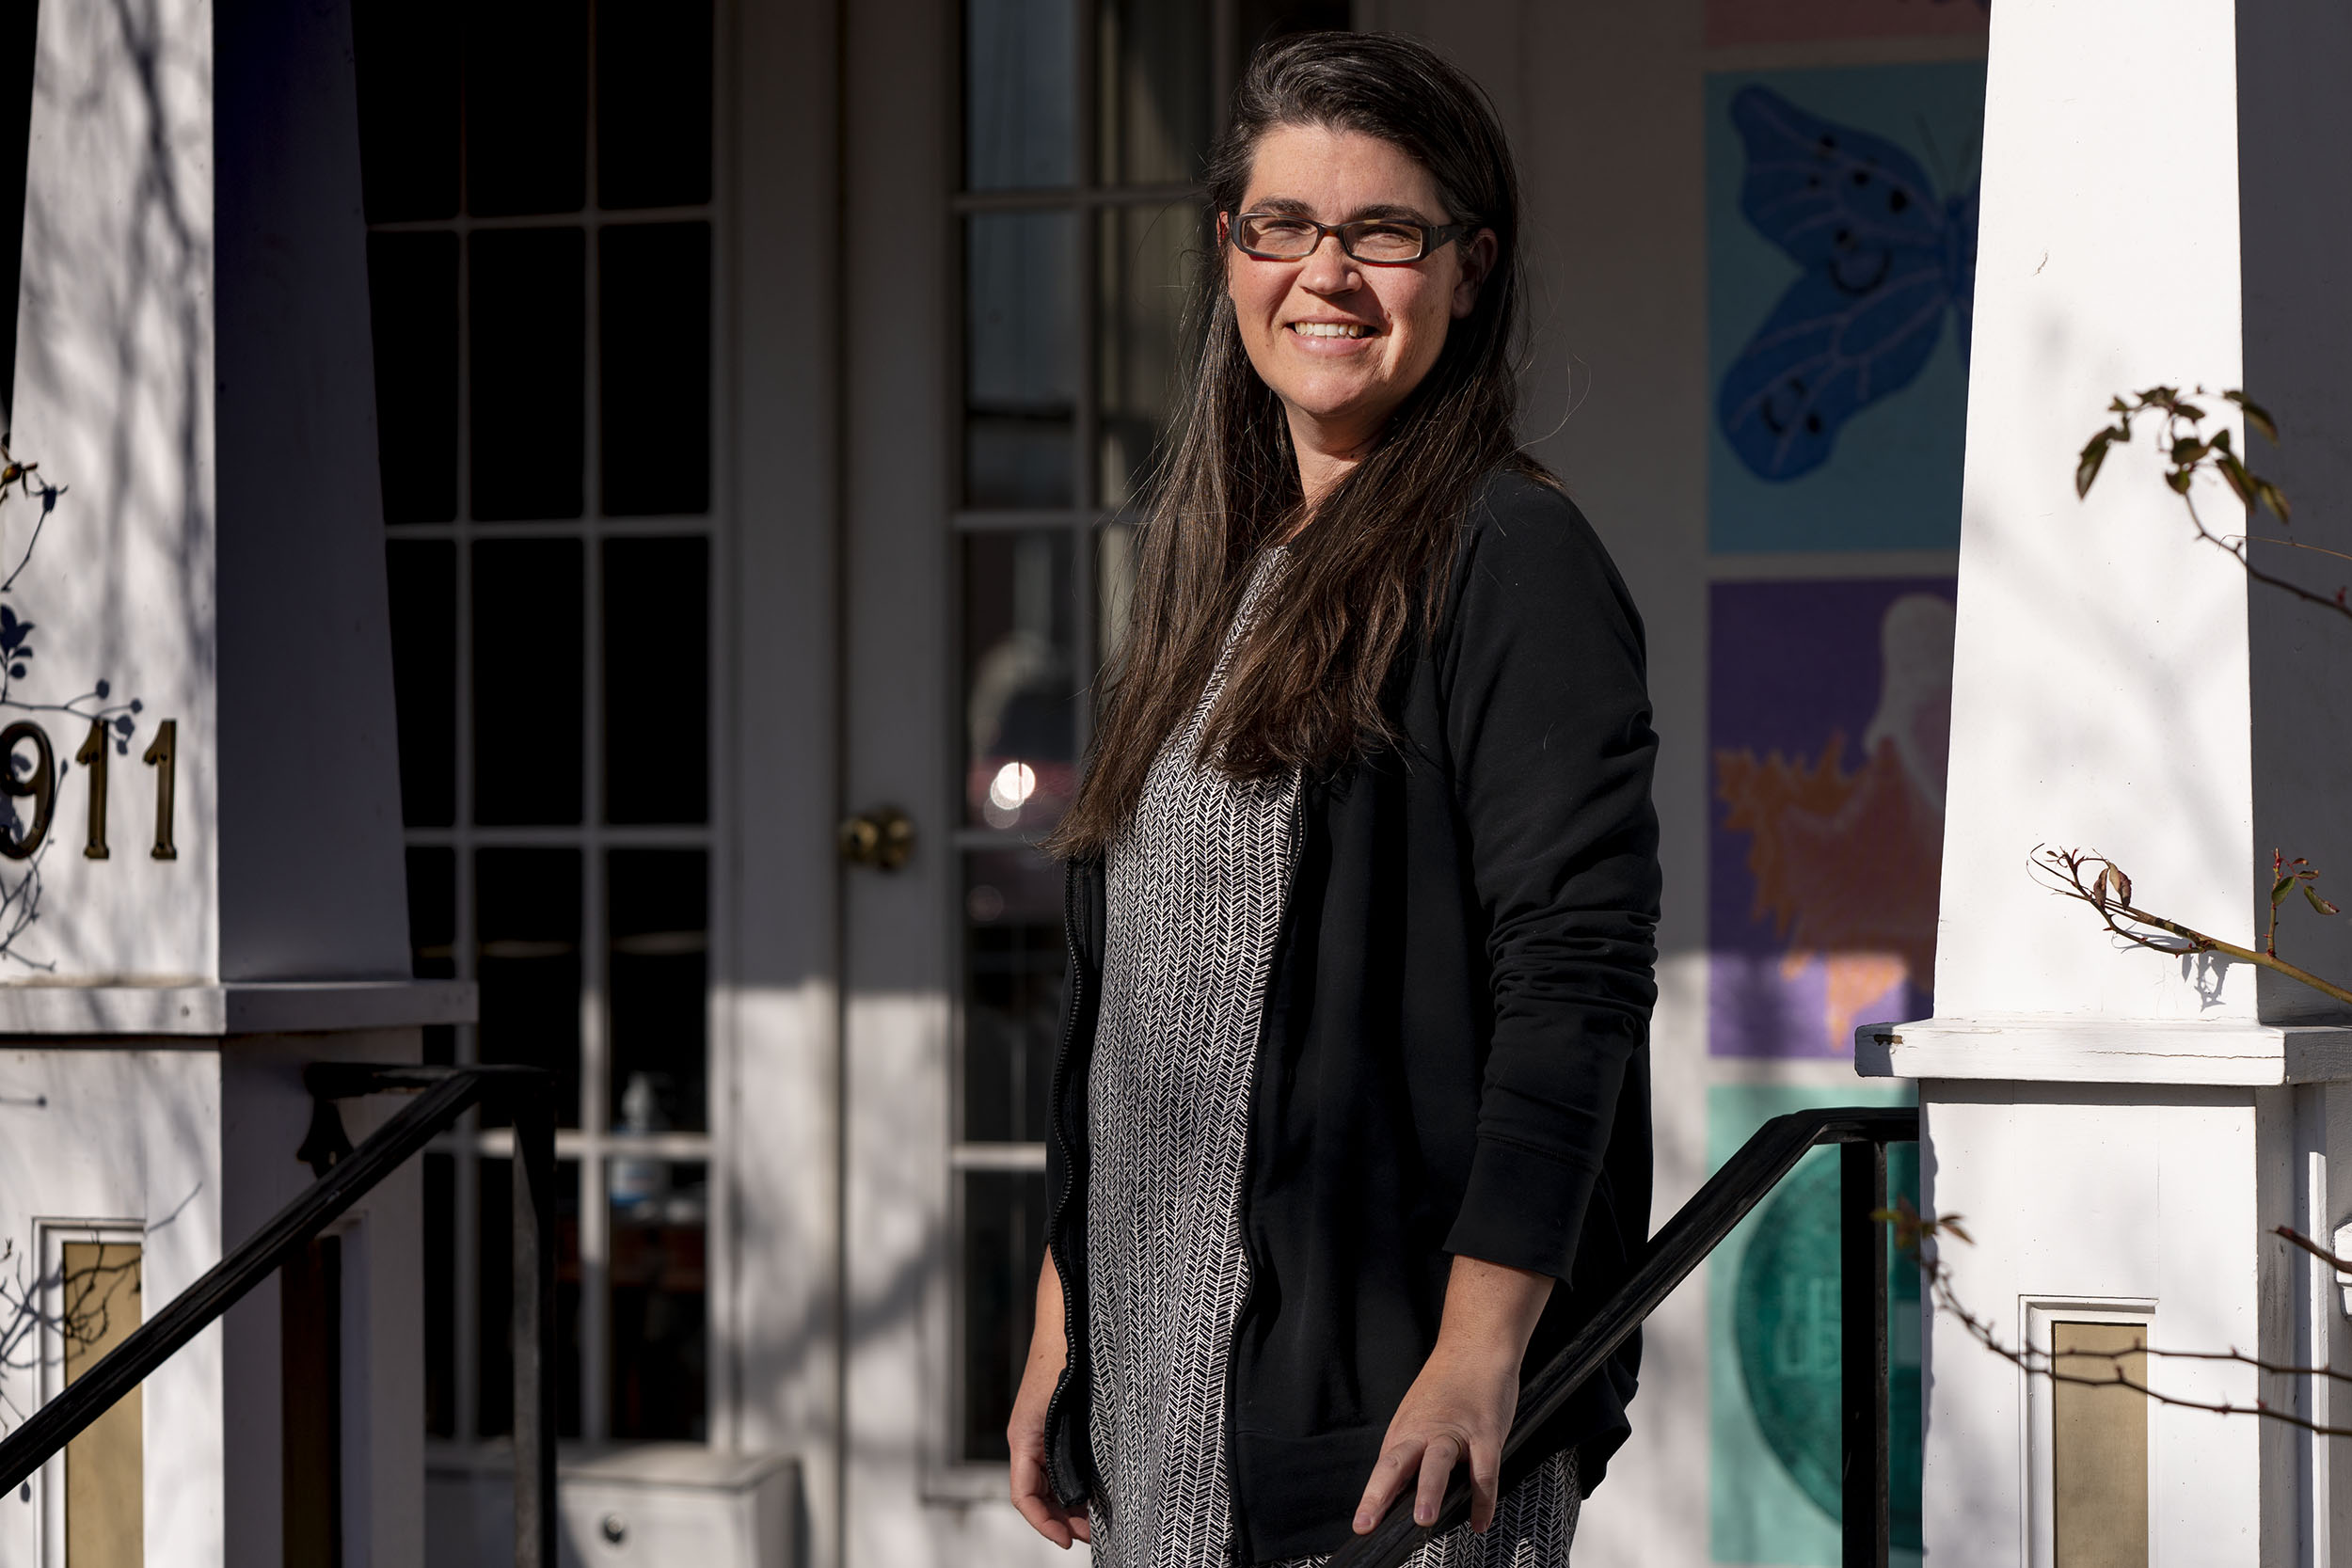 Anna Mendez has served with several local and state organizations focused on reducing criminalization of mental illness. (Photo by Sanjay Suchak, University Communications)